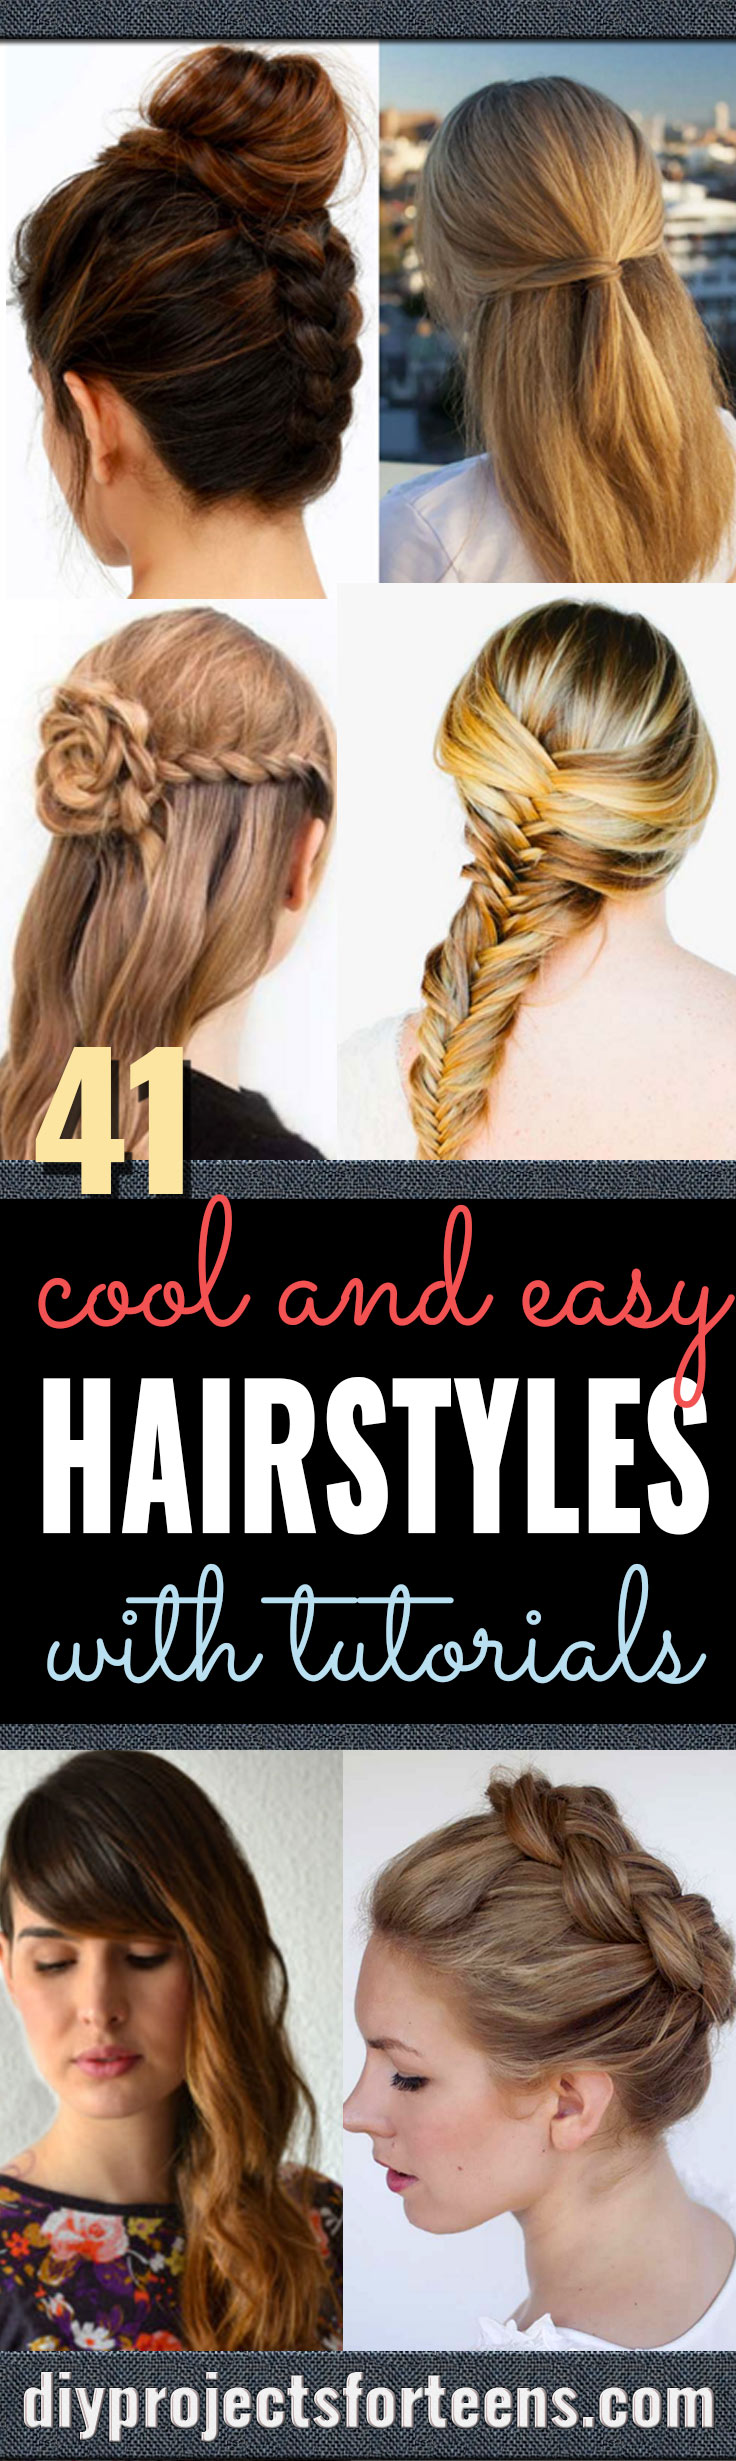 Cool and Easy DIY Hairstyles - Quick and Easy Ideas for Back to School Styles for Medium, Short and Long Hair - Fun Tips and Best Step by Step Tutorials for Teens, Prom, Weddings, Special Occasions and Work. Up dos, Braids, Top Knots and Buns, Super Summer Looks #hairstyles #hair #teens #easyhairstyles #diy #beauty